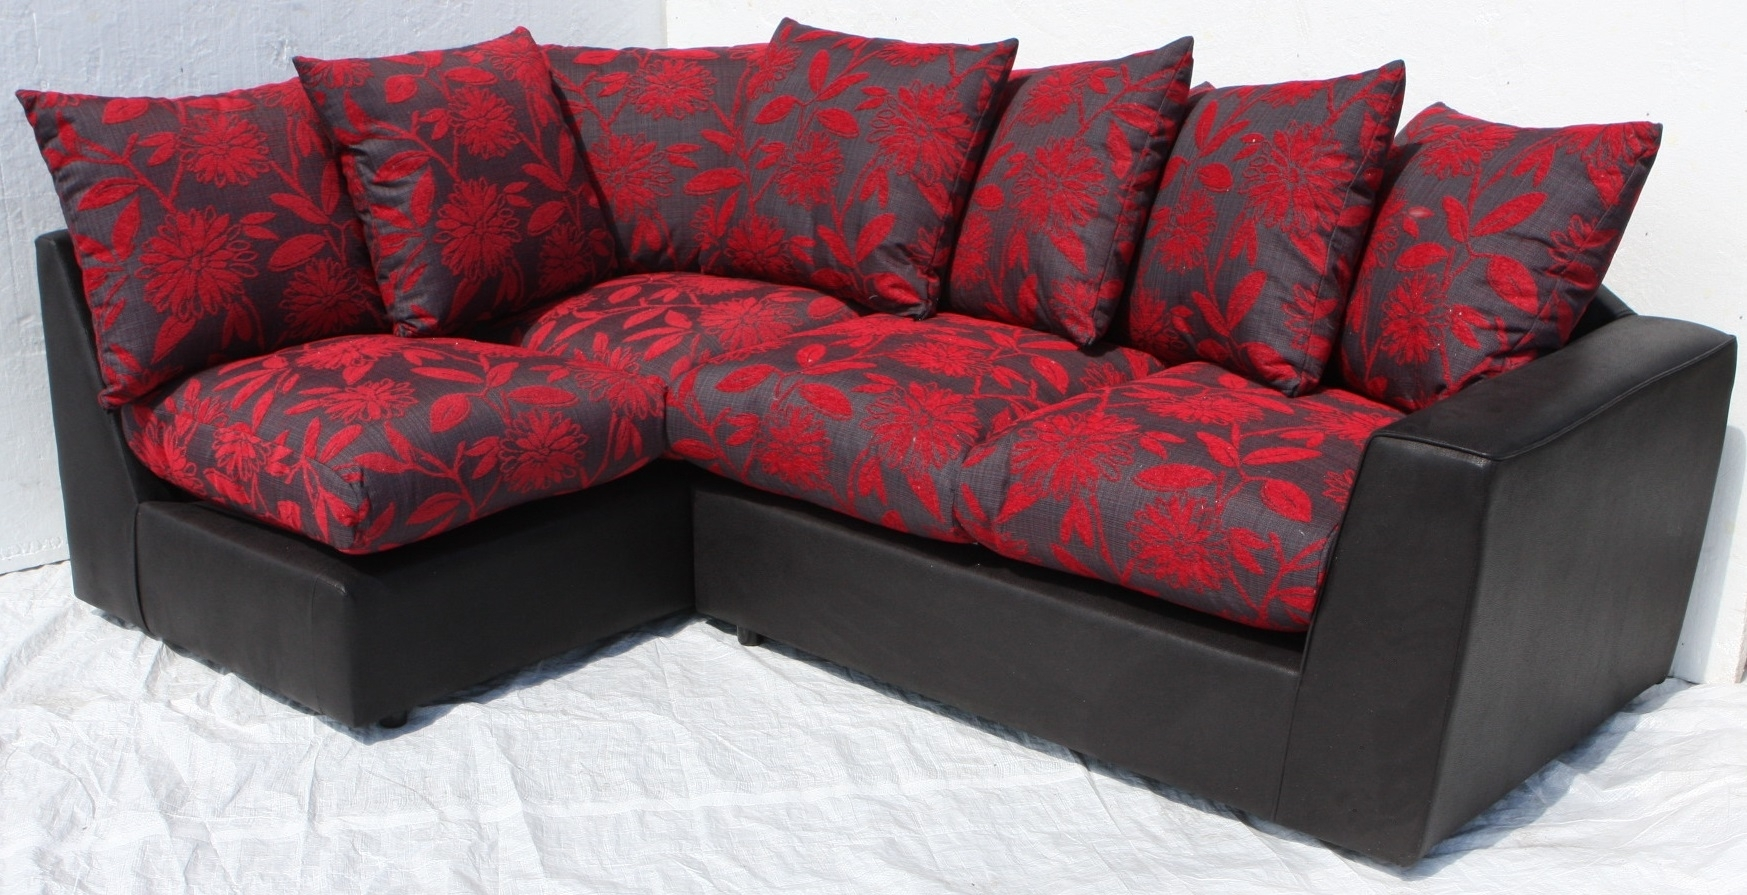 Helibeds Same Day Or Next Day Delivery Of – Sofa's – Harry Corner Pertaining To Red And Black Sofas (Image 5 of 10)